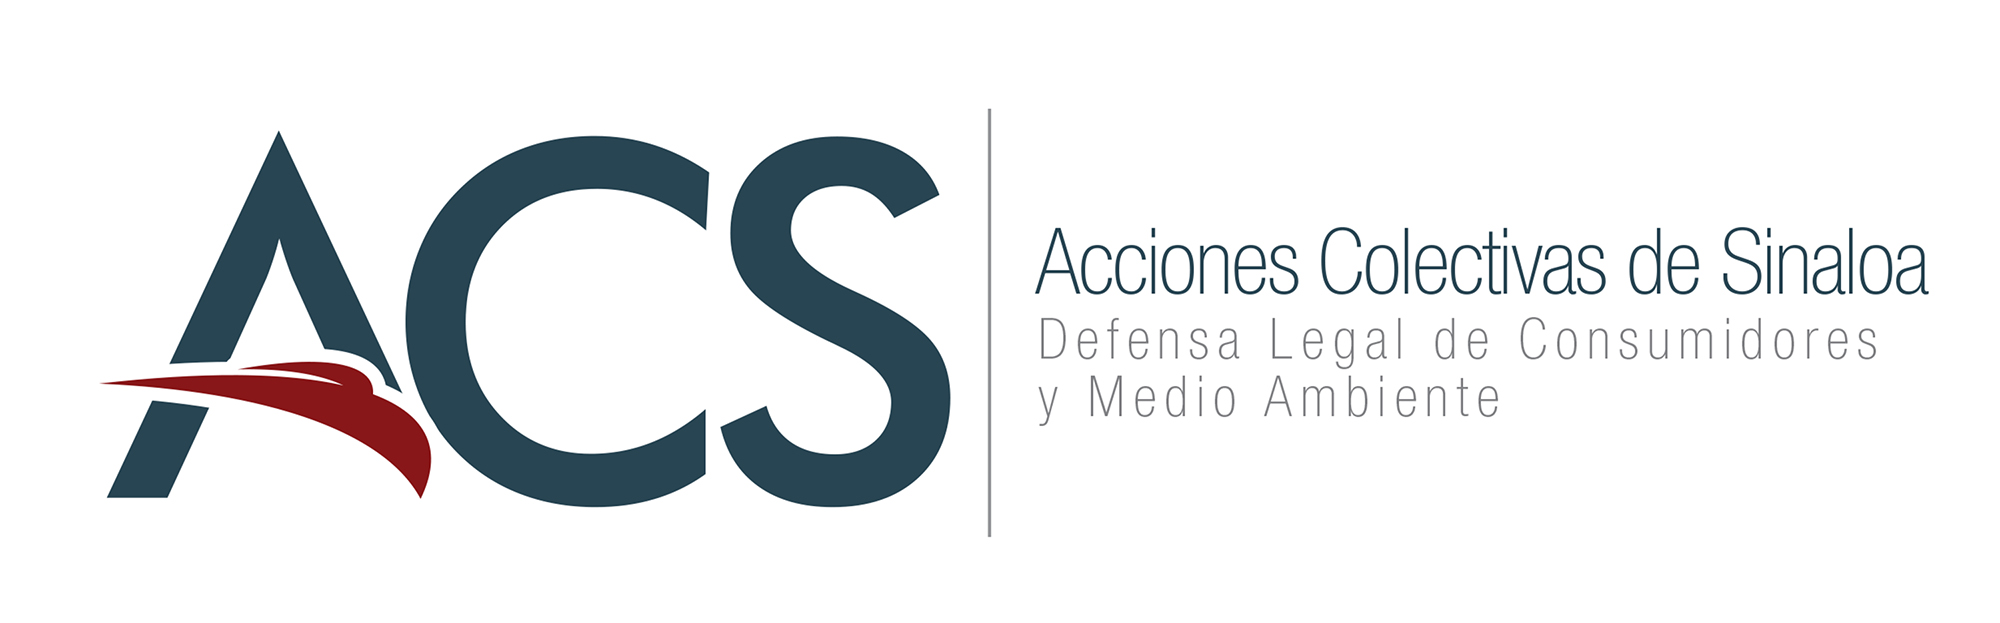 https://acsinaloa.com/wp-content/uploads/2018/11/2014-logo-acs.jpg